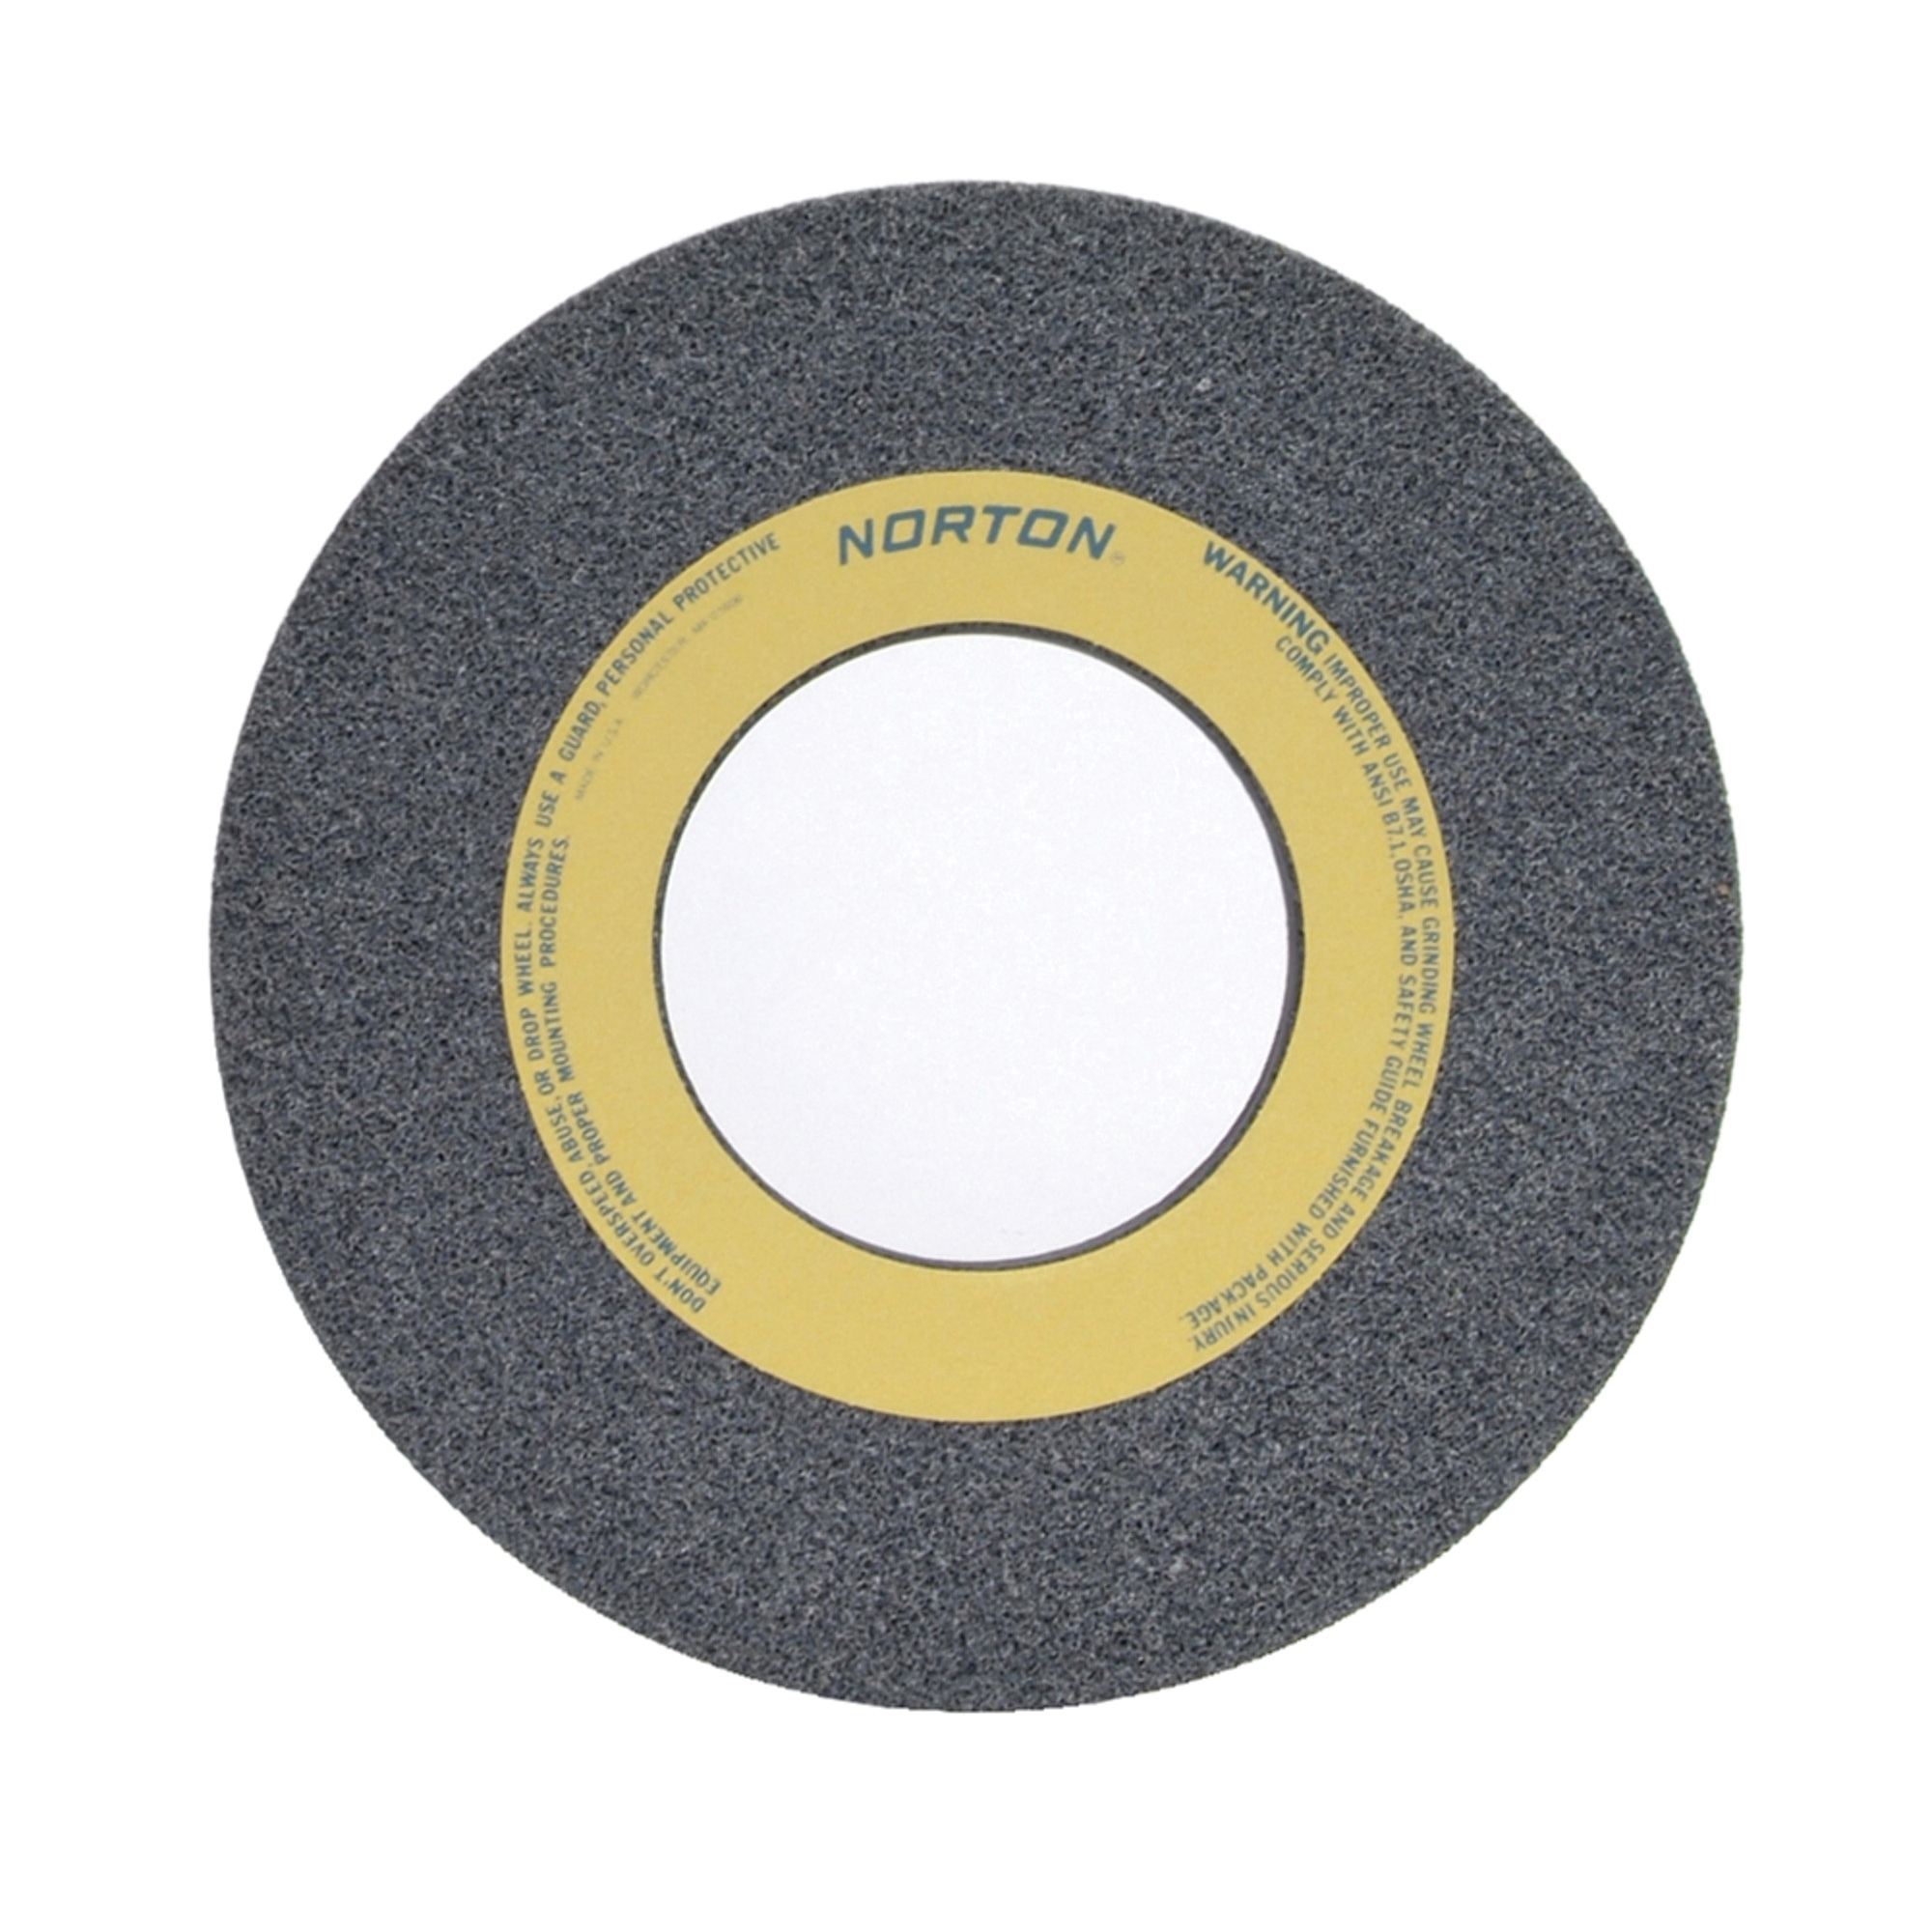 Norton® 66253364339 32A Straight Toolroom Wheel, 14 in Dia x 1-1/2 in THK, 5 in Center Hole, 46 Grit, Aluminum Oxide Abrasive